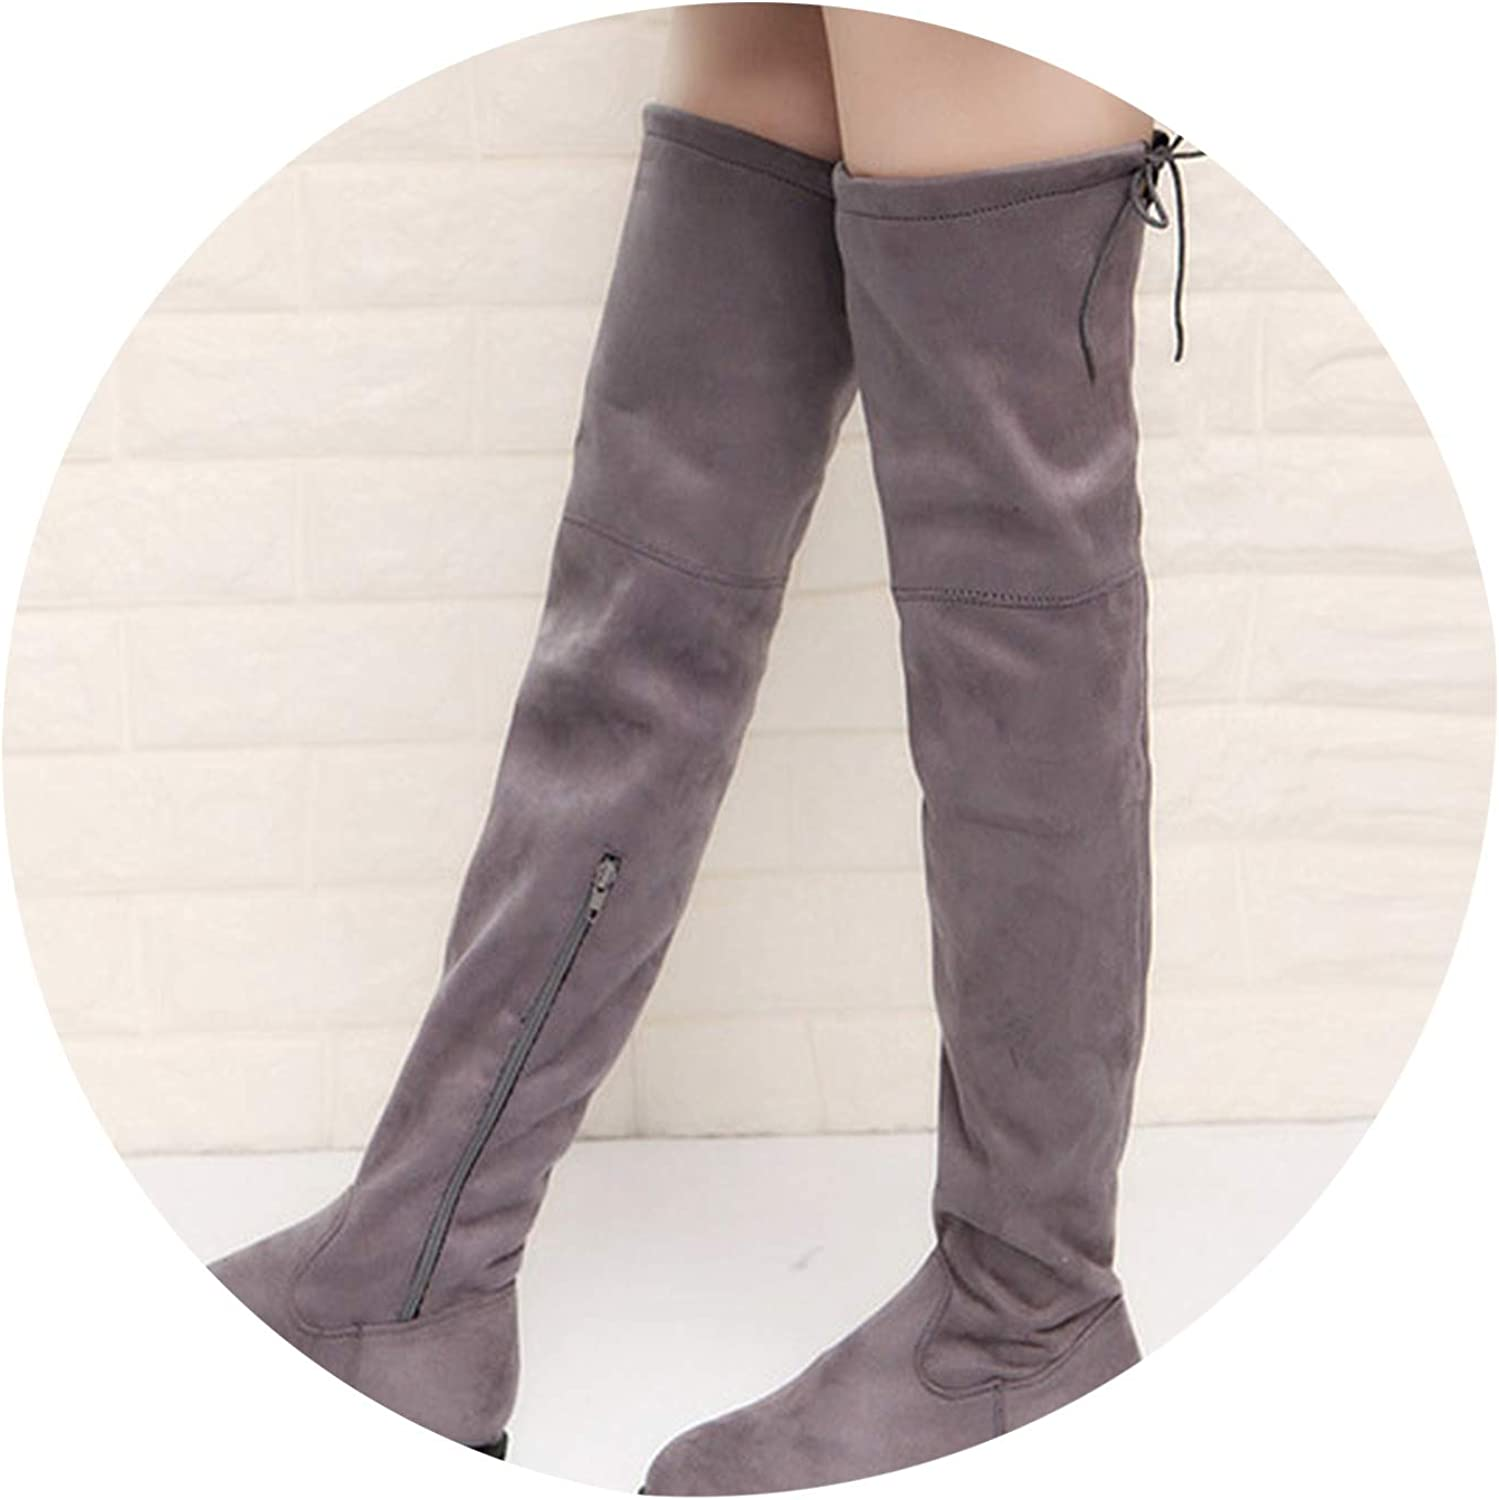 Slim Boots Sexy Over The Knee High Suede Women Snow Boots High Boots shoes Woman